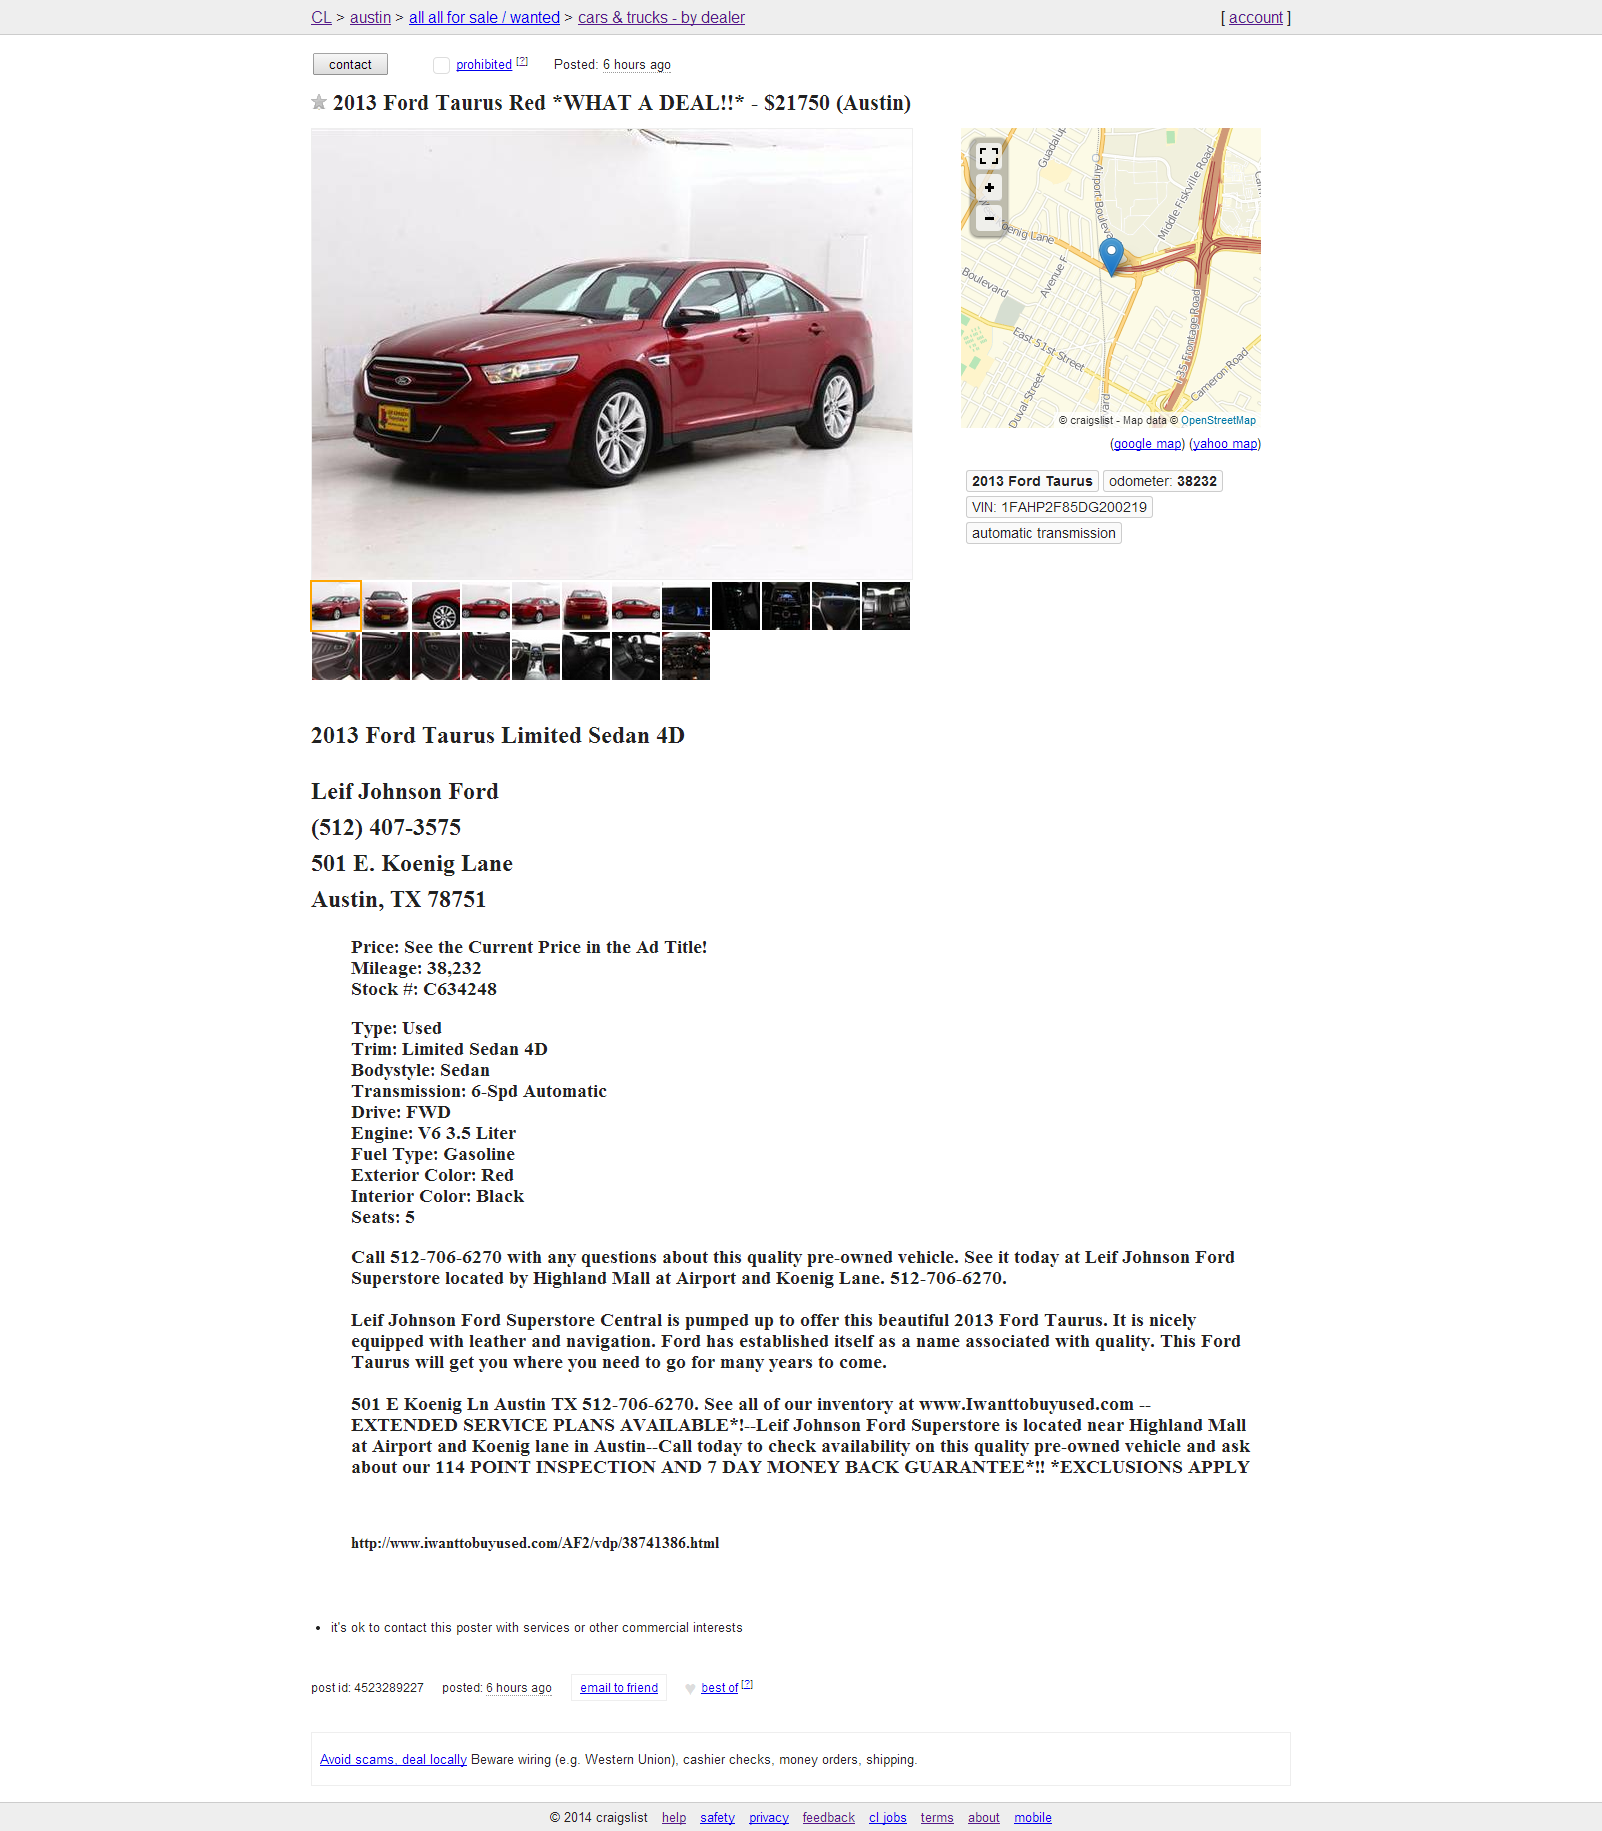 Craigslist Posting For Car Dealers Auto Dealer Craigslist Posting